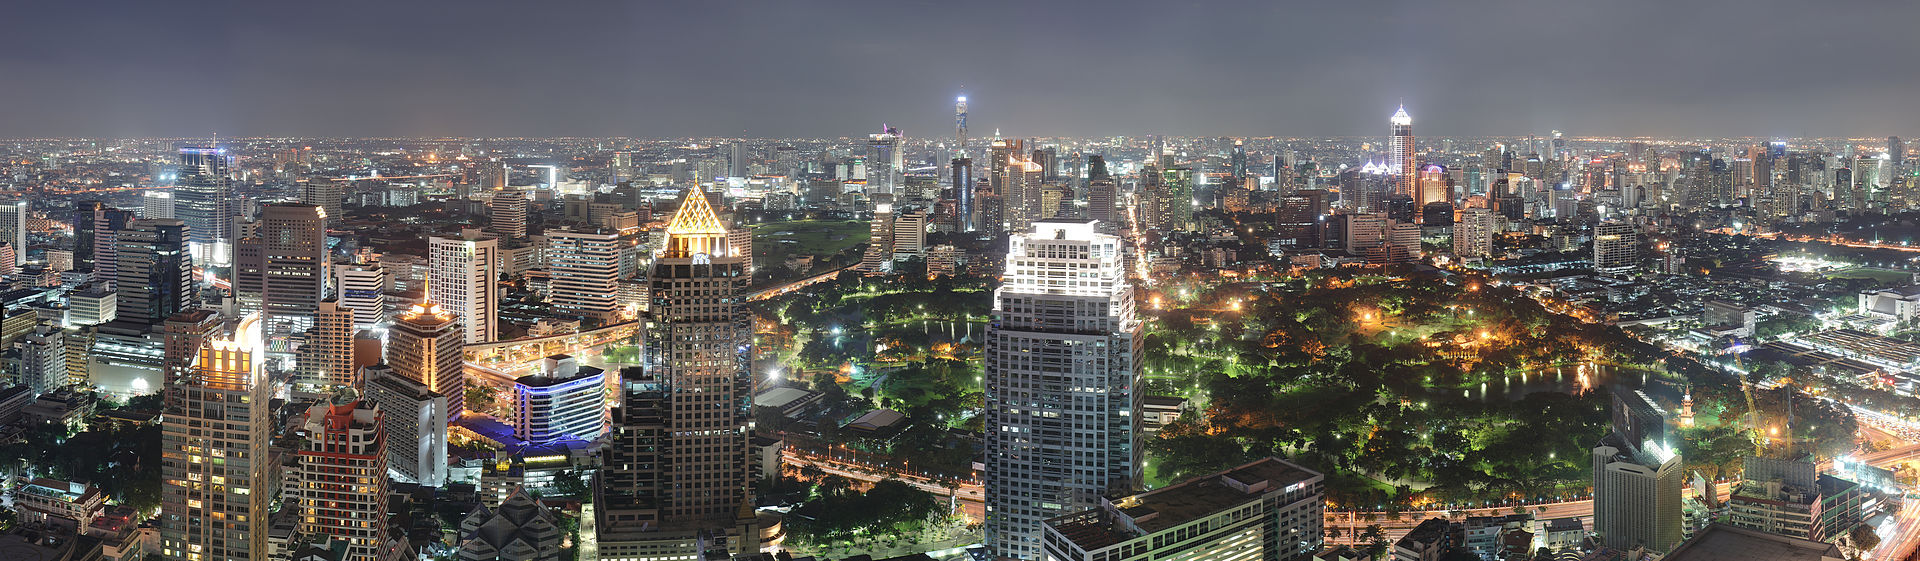 Night-time panorama photograph showing an expansive cityscape with several skyscrapers in the foreground, a park in the centre, and a large group of buildings across the park